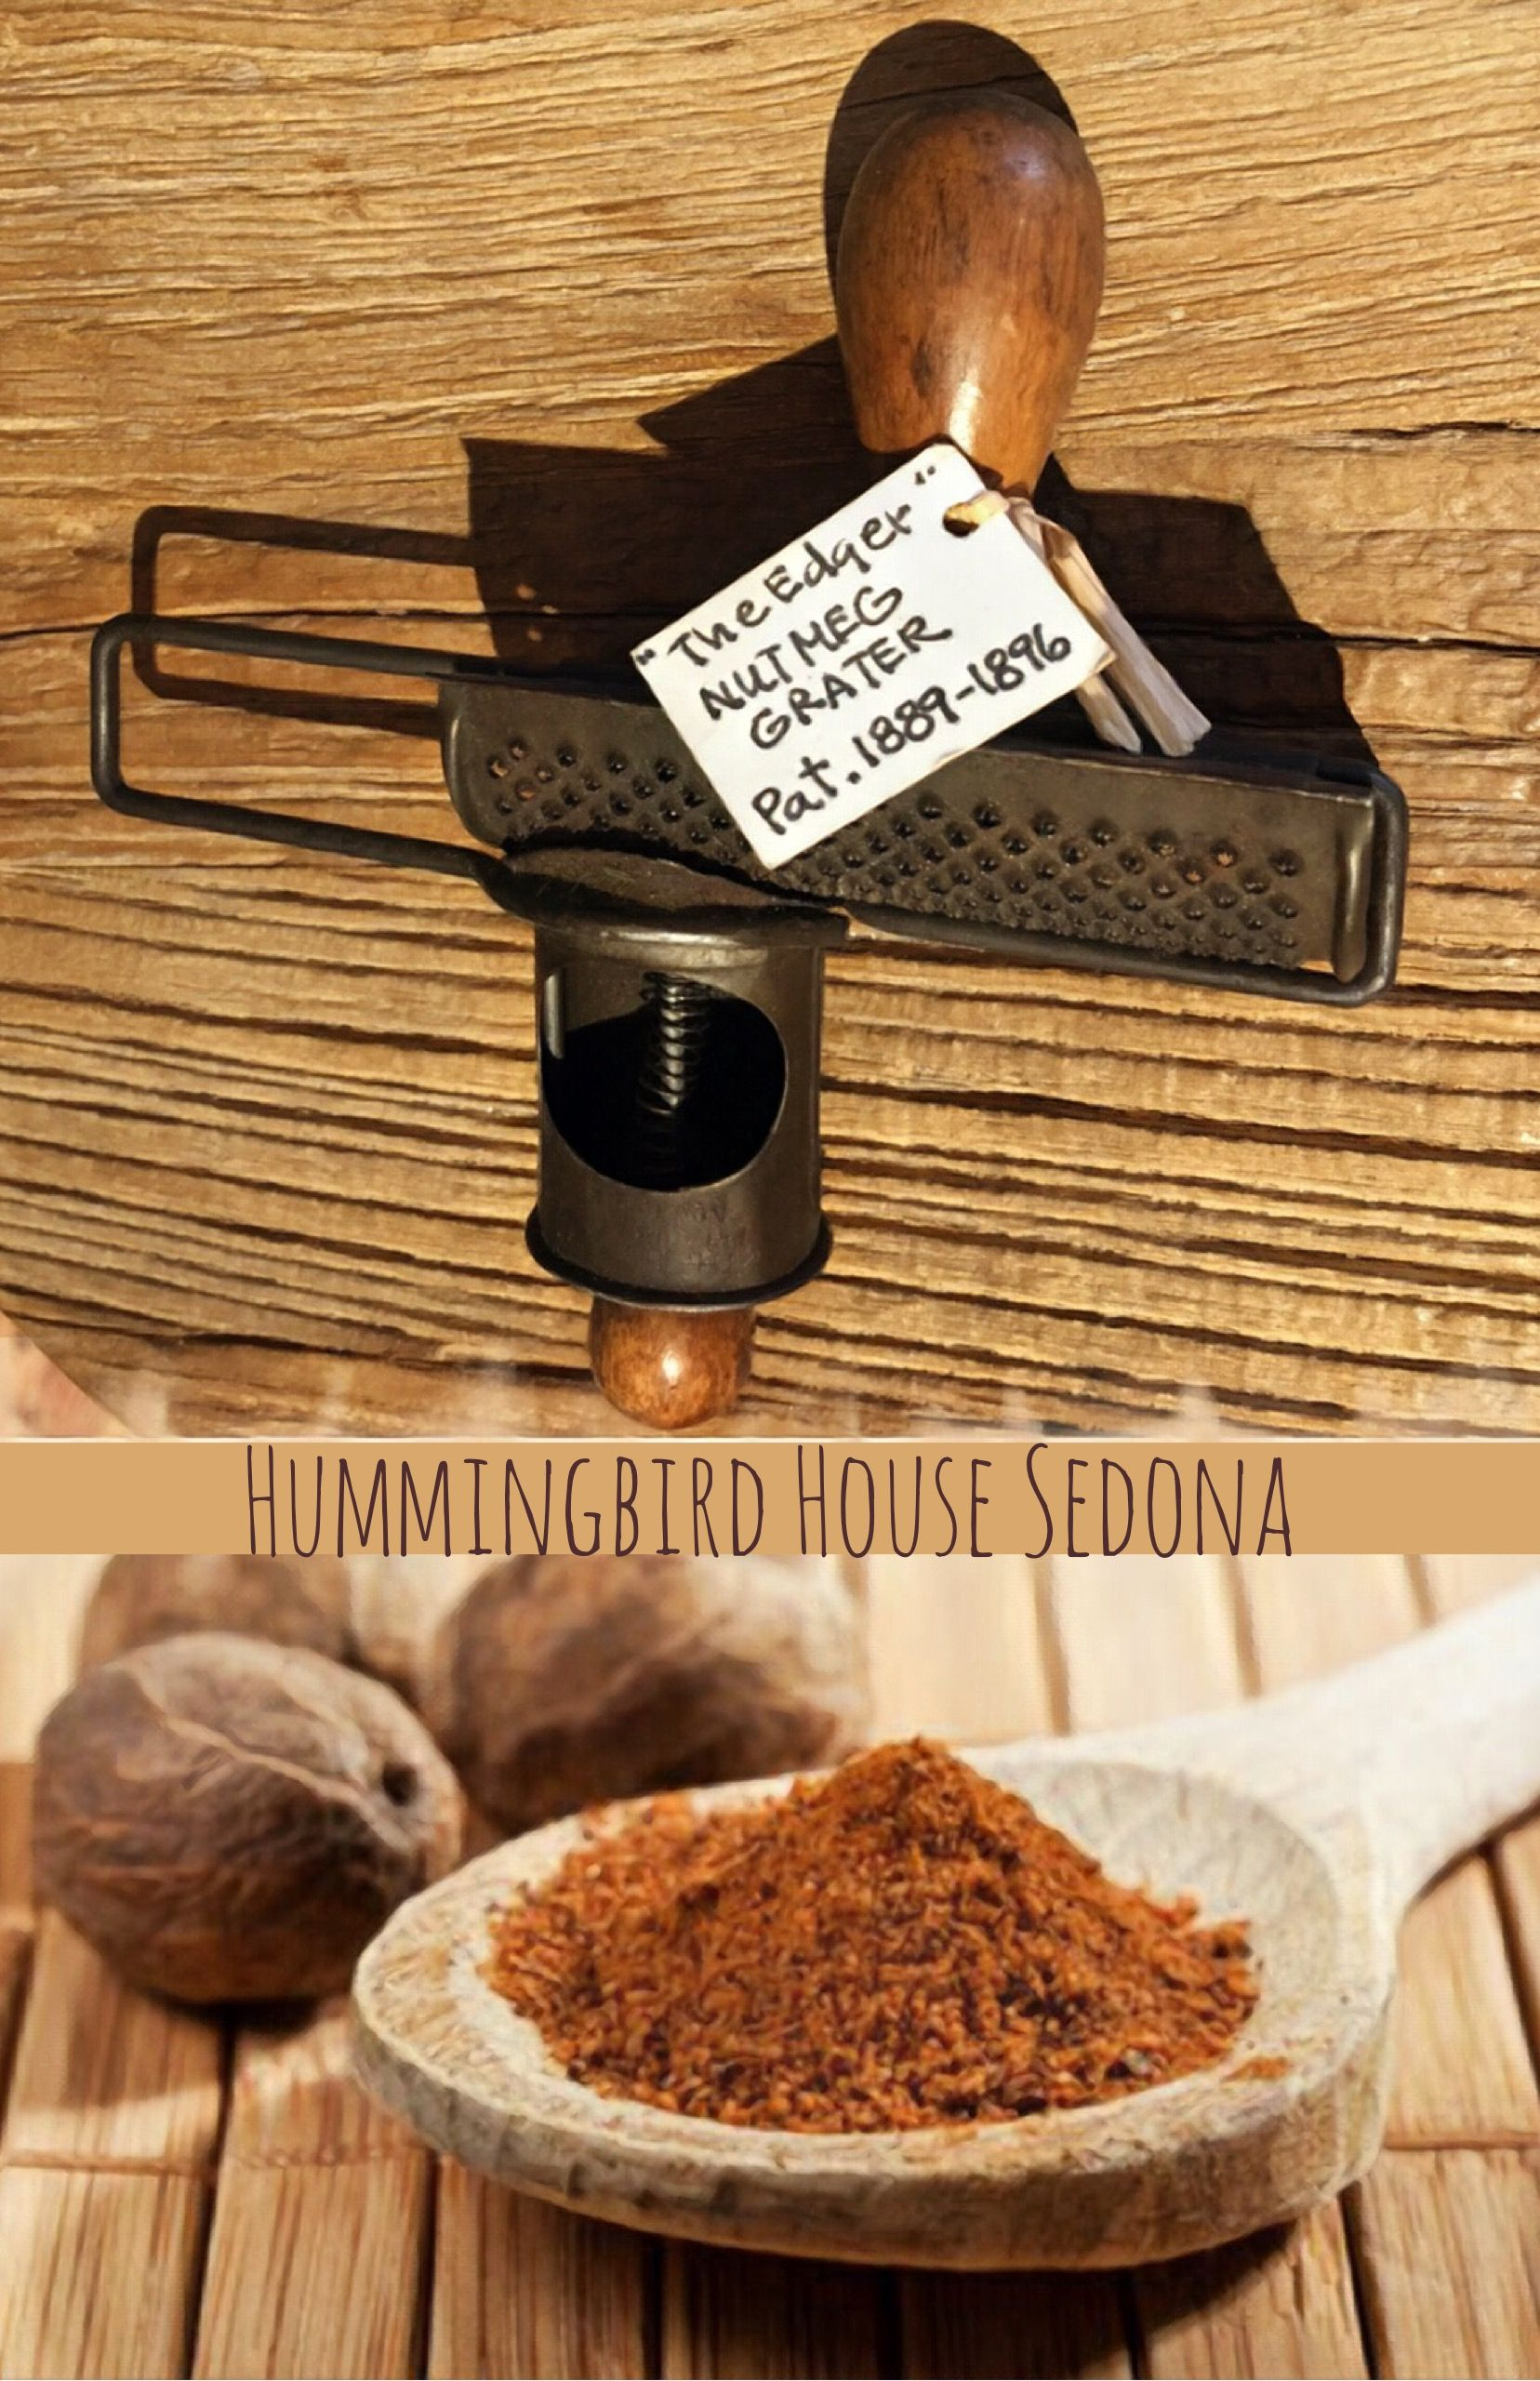 Collections by Hummingbird House Sedona Gift store